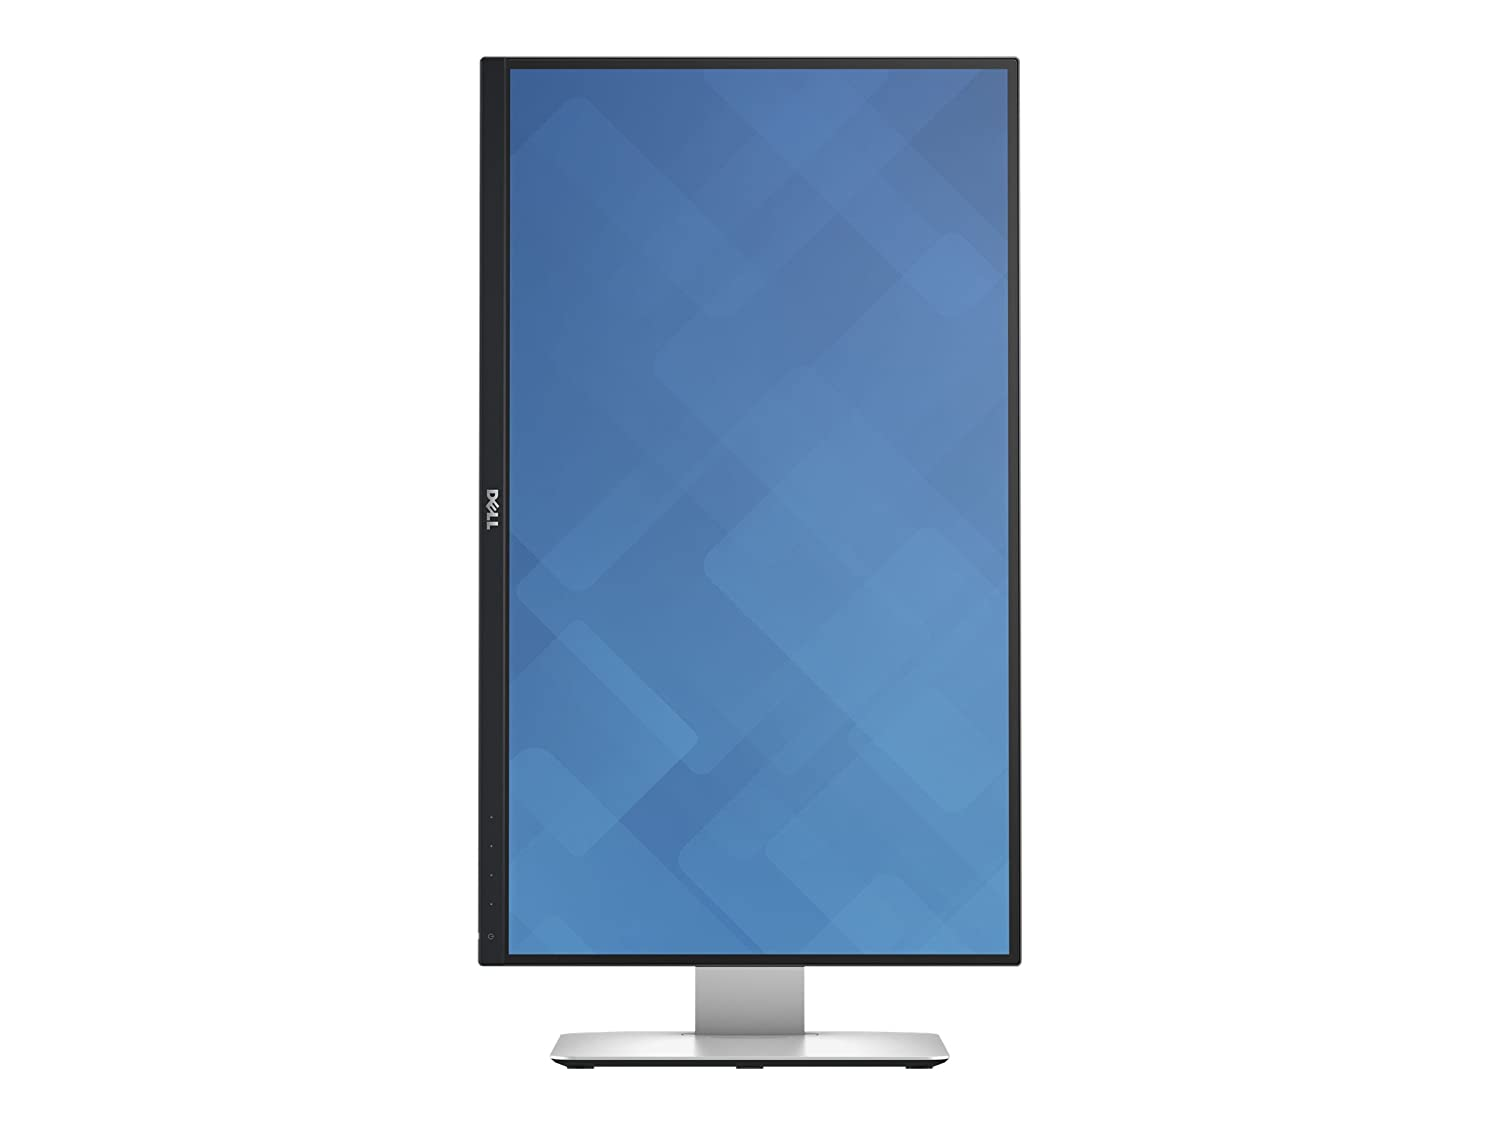 Dell Ultrasharp U2515h 25 Inch Screen Led Lit Monitor Which Displays The Cost Of Powering Monitored Load Computers Accessories